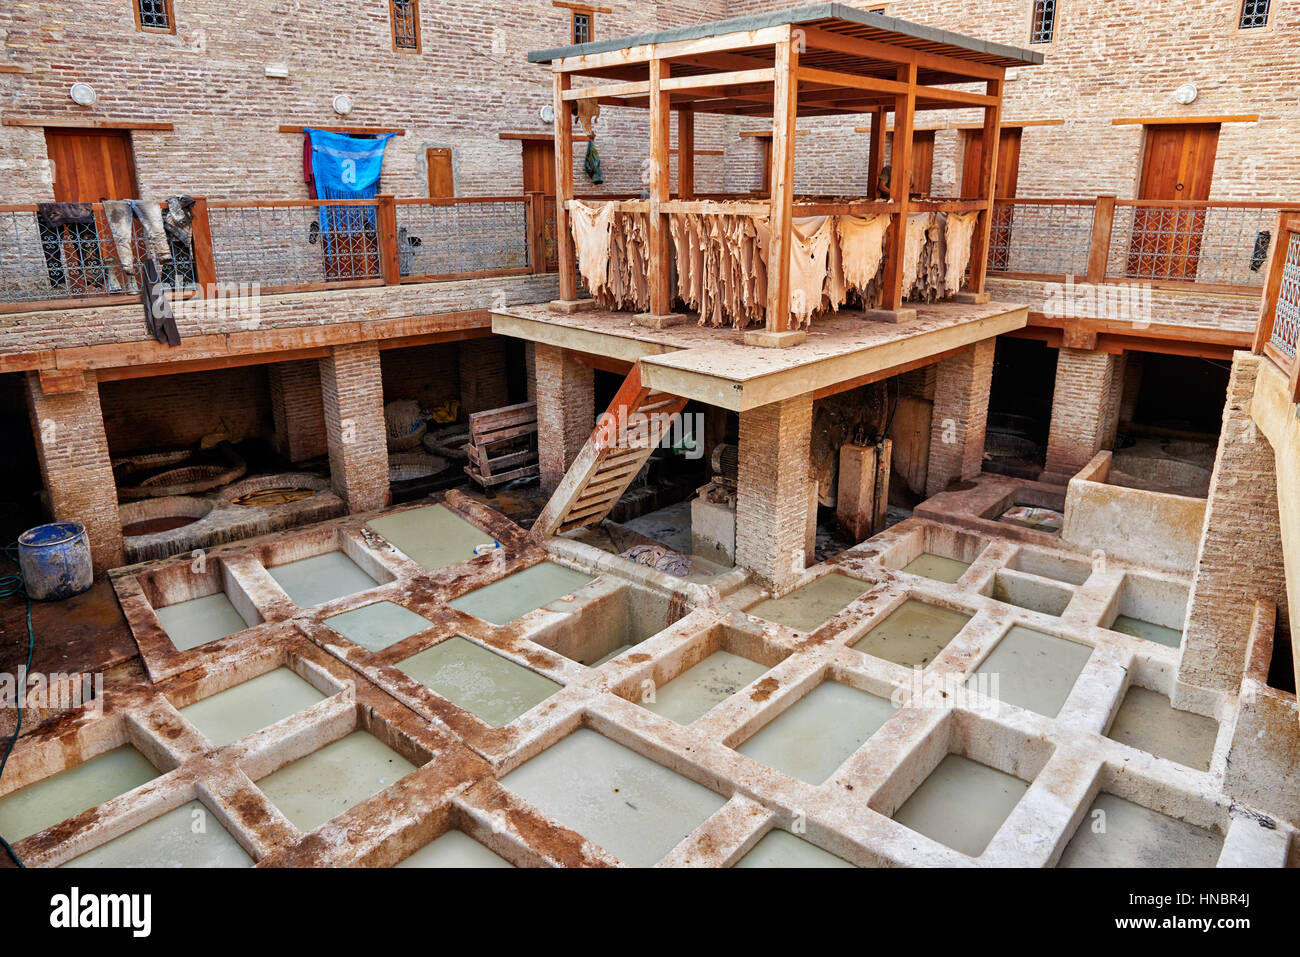 refurbished traditional leather tannery in Old Fez, Morocco, Africa - Stock Image